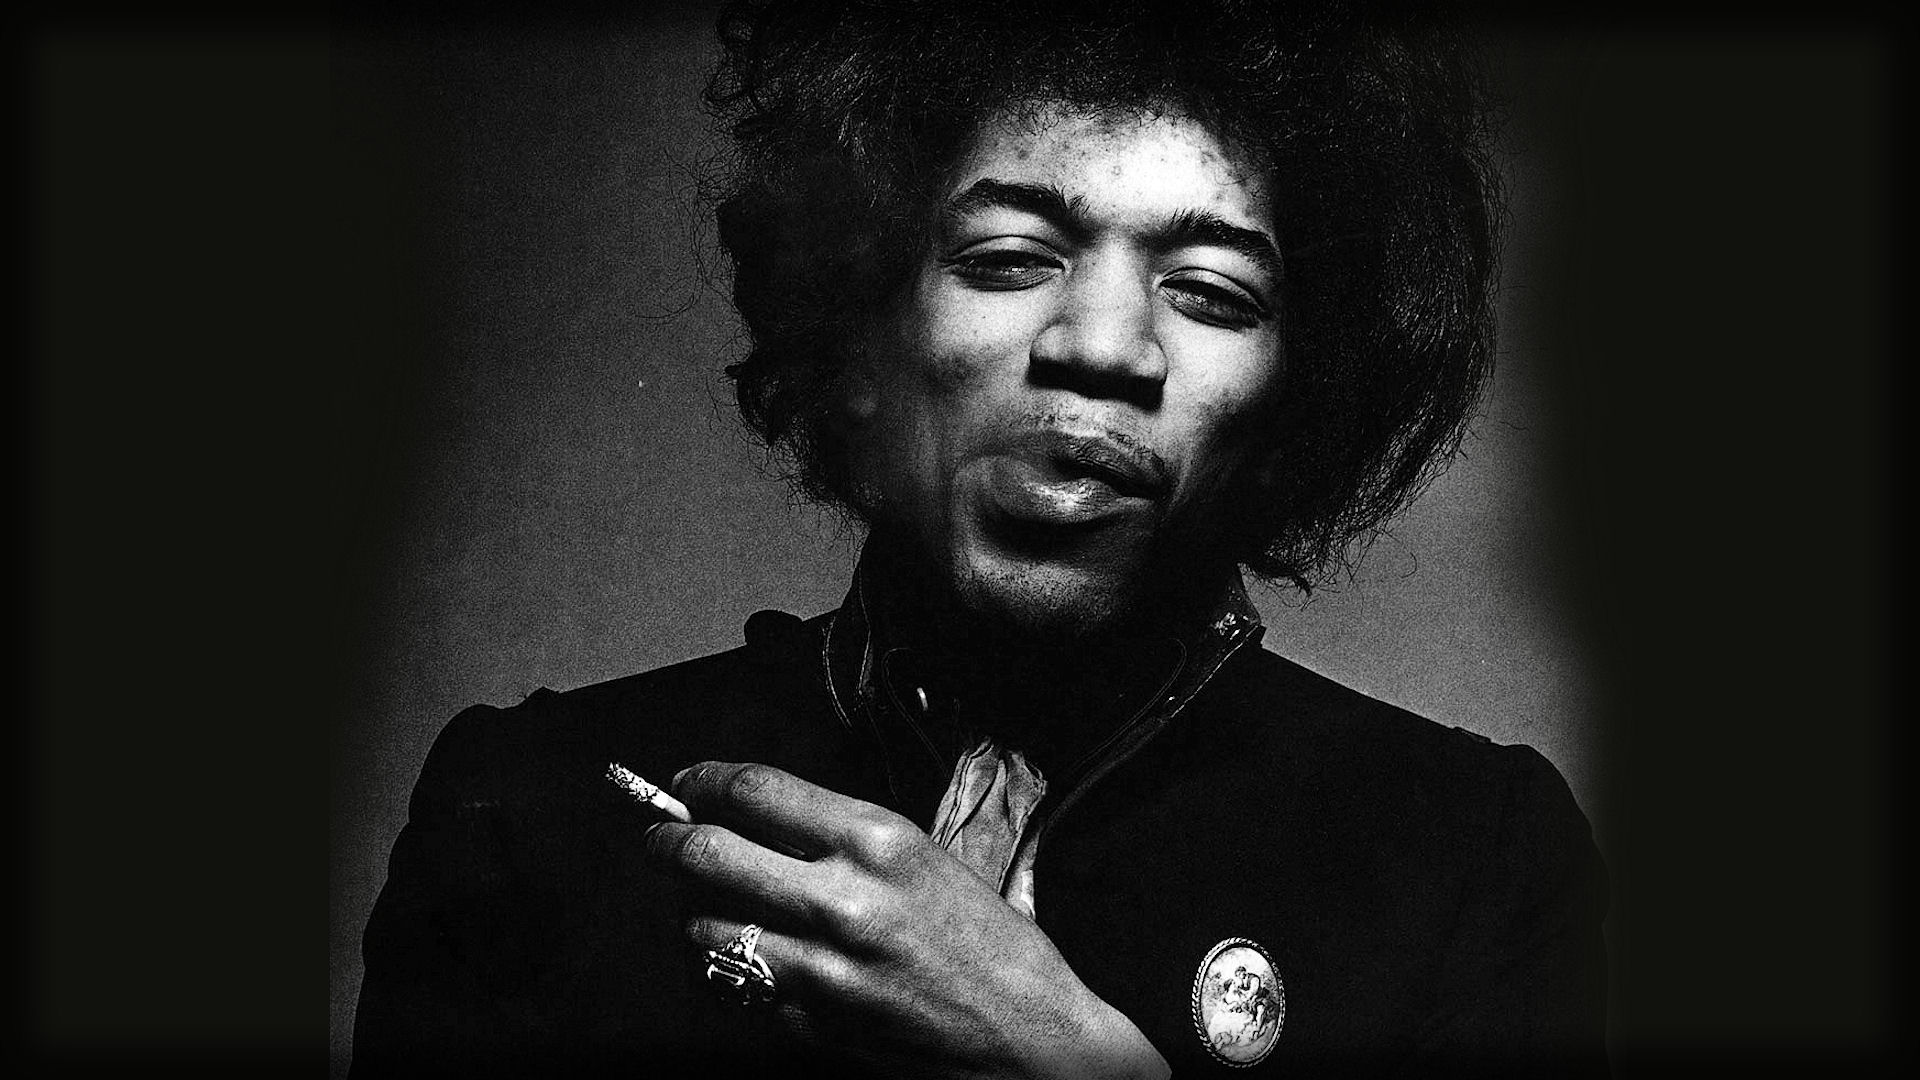 Jimi Hendrix Wallpaper  MV Blog Sharing 1920x1080